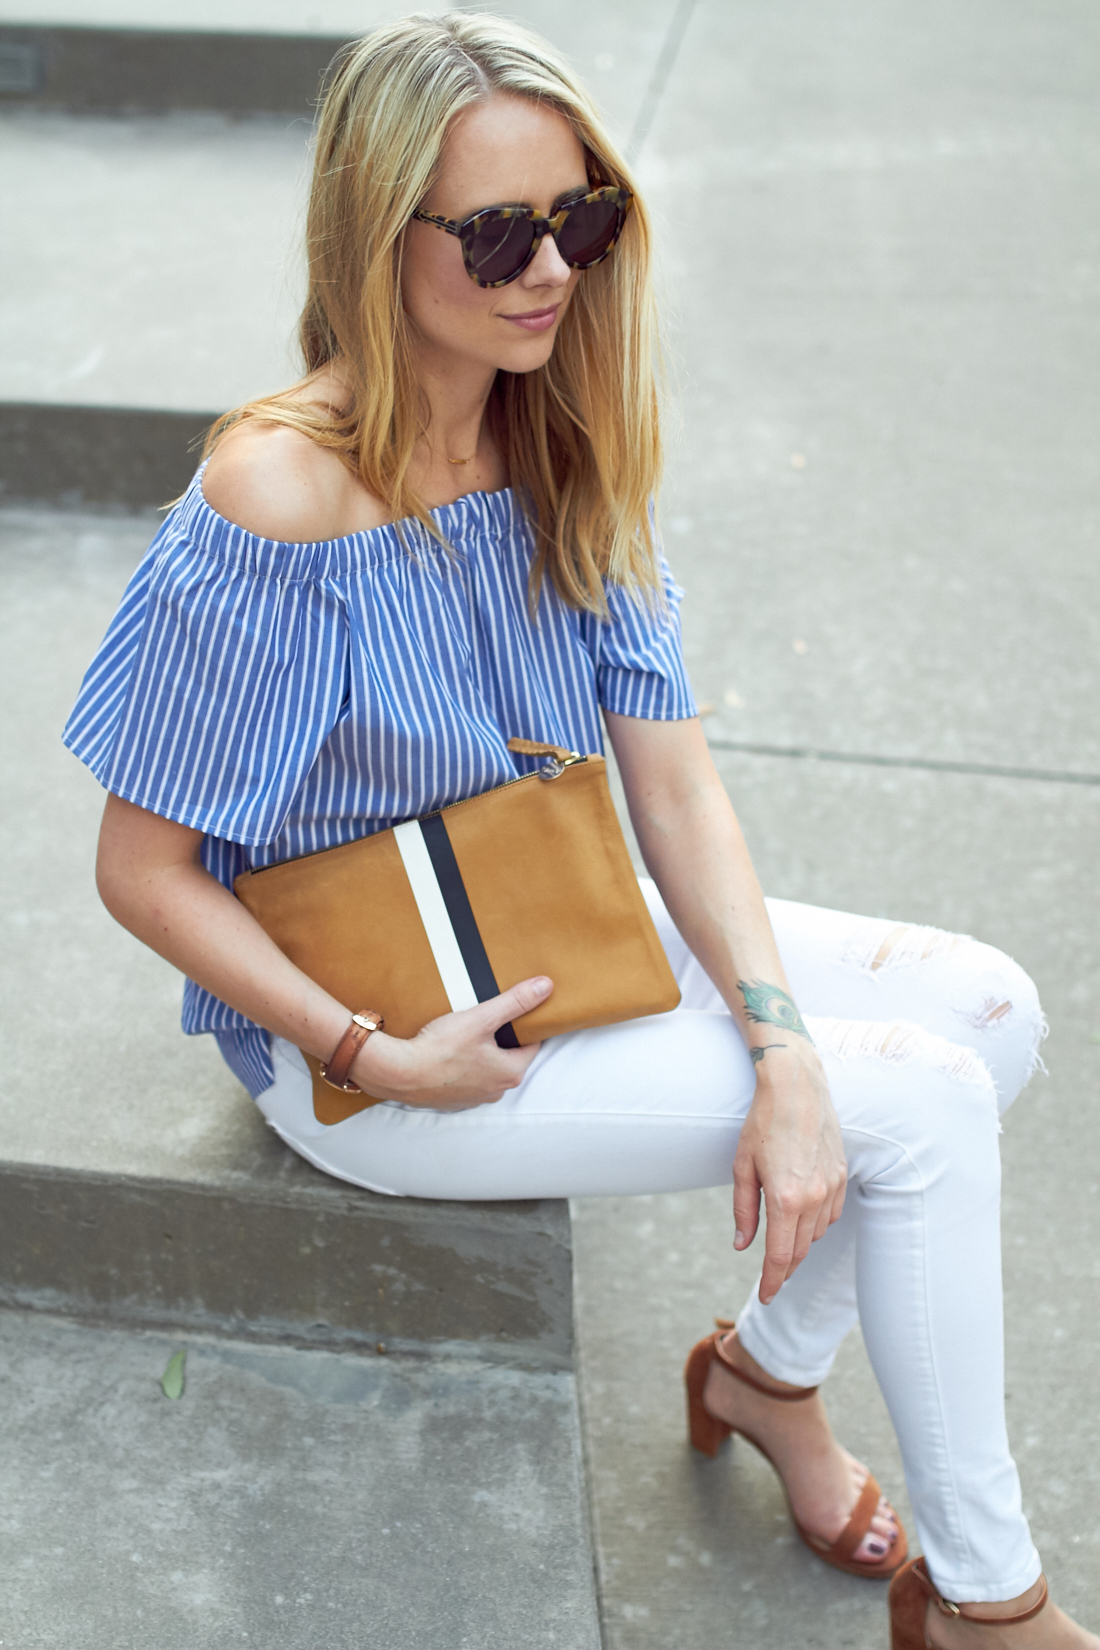 fashion-jackson-banana-republic-blue-stripe-off-the-shoulder-top-white-skinny-jeans-stuart-weitzman-nearly-nude-sandals-tan-clare-v-clutch